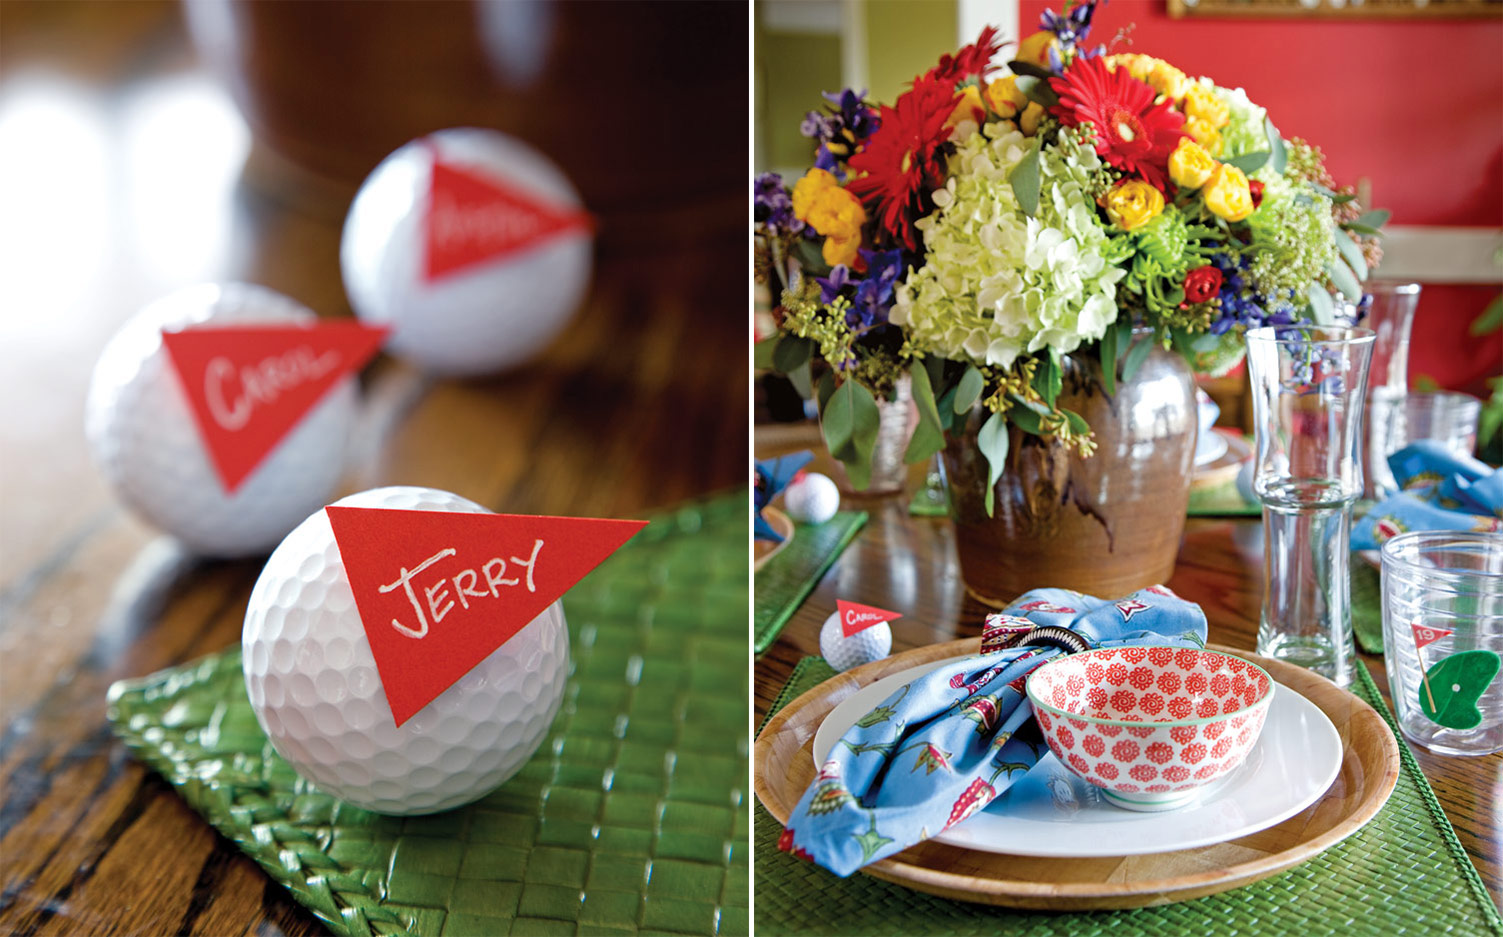 Photo of golf tee place card and place setting